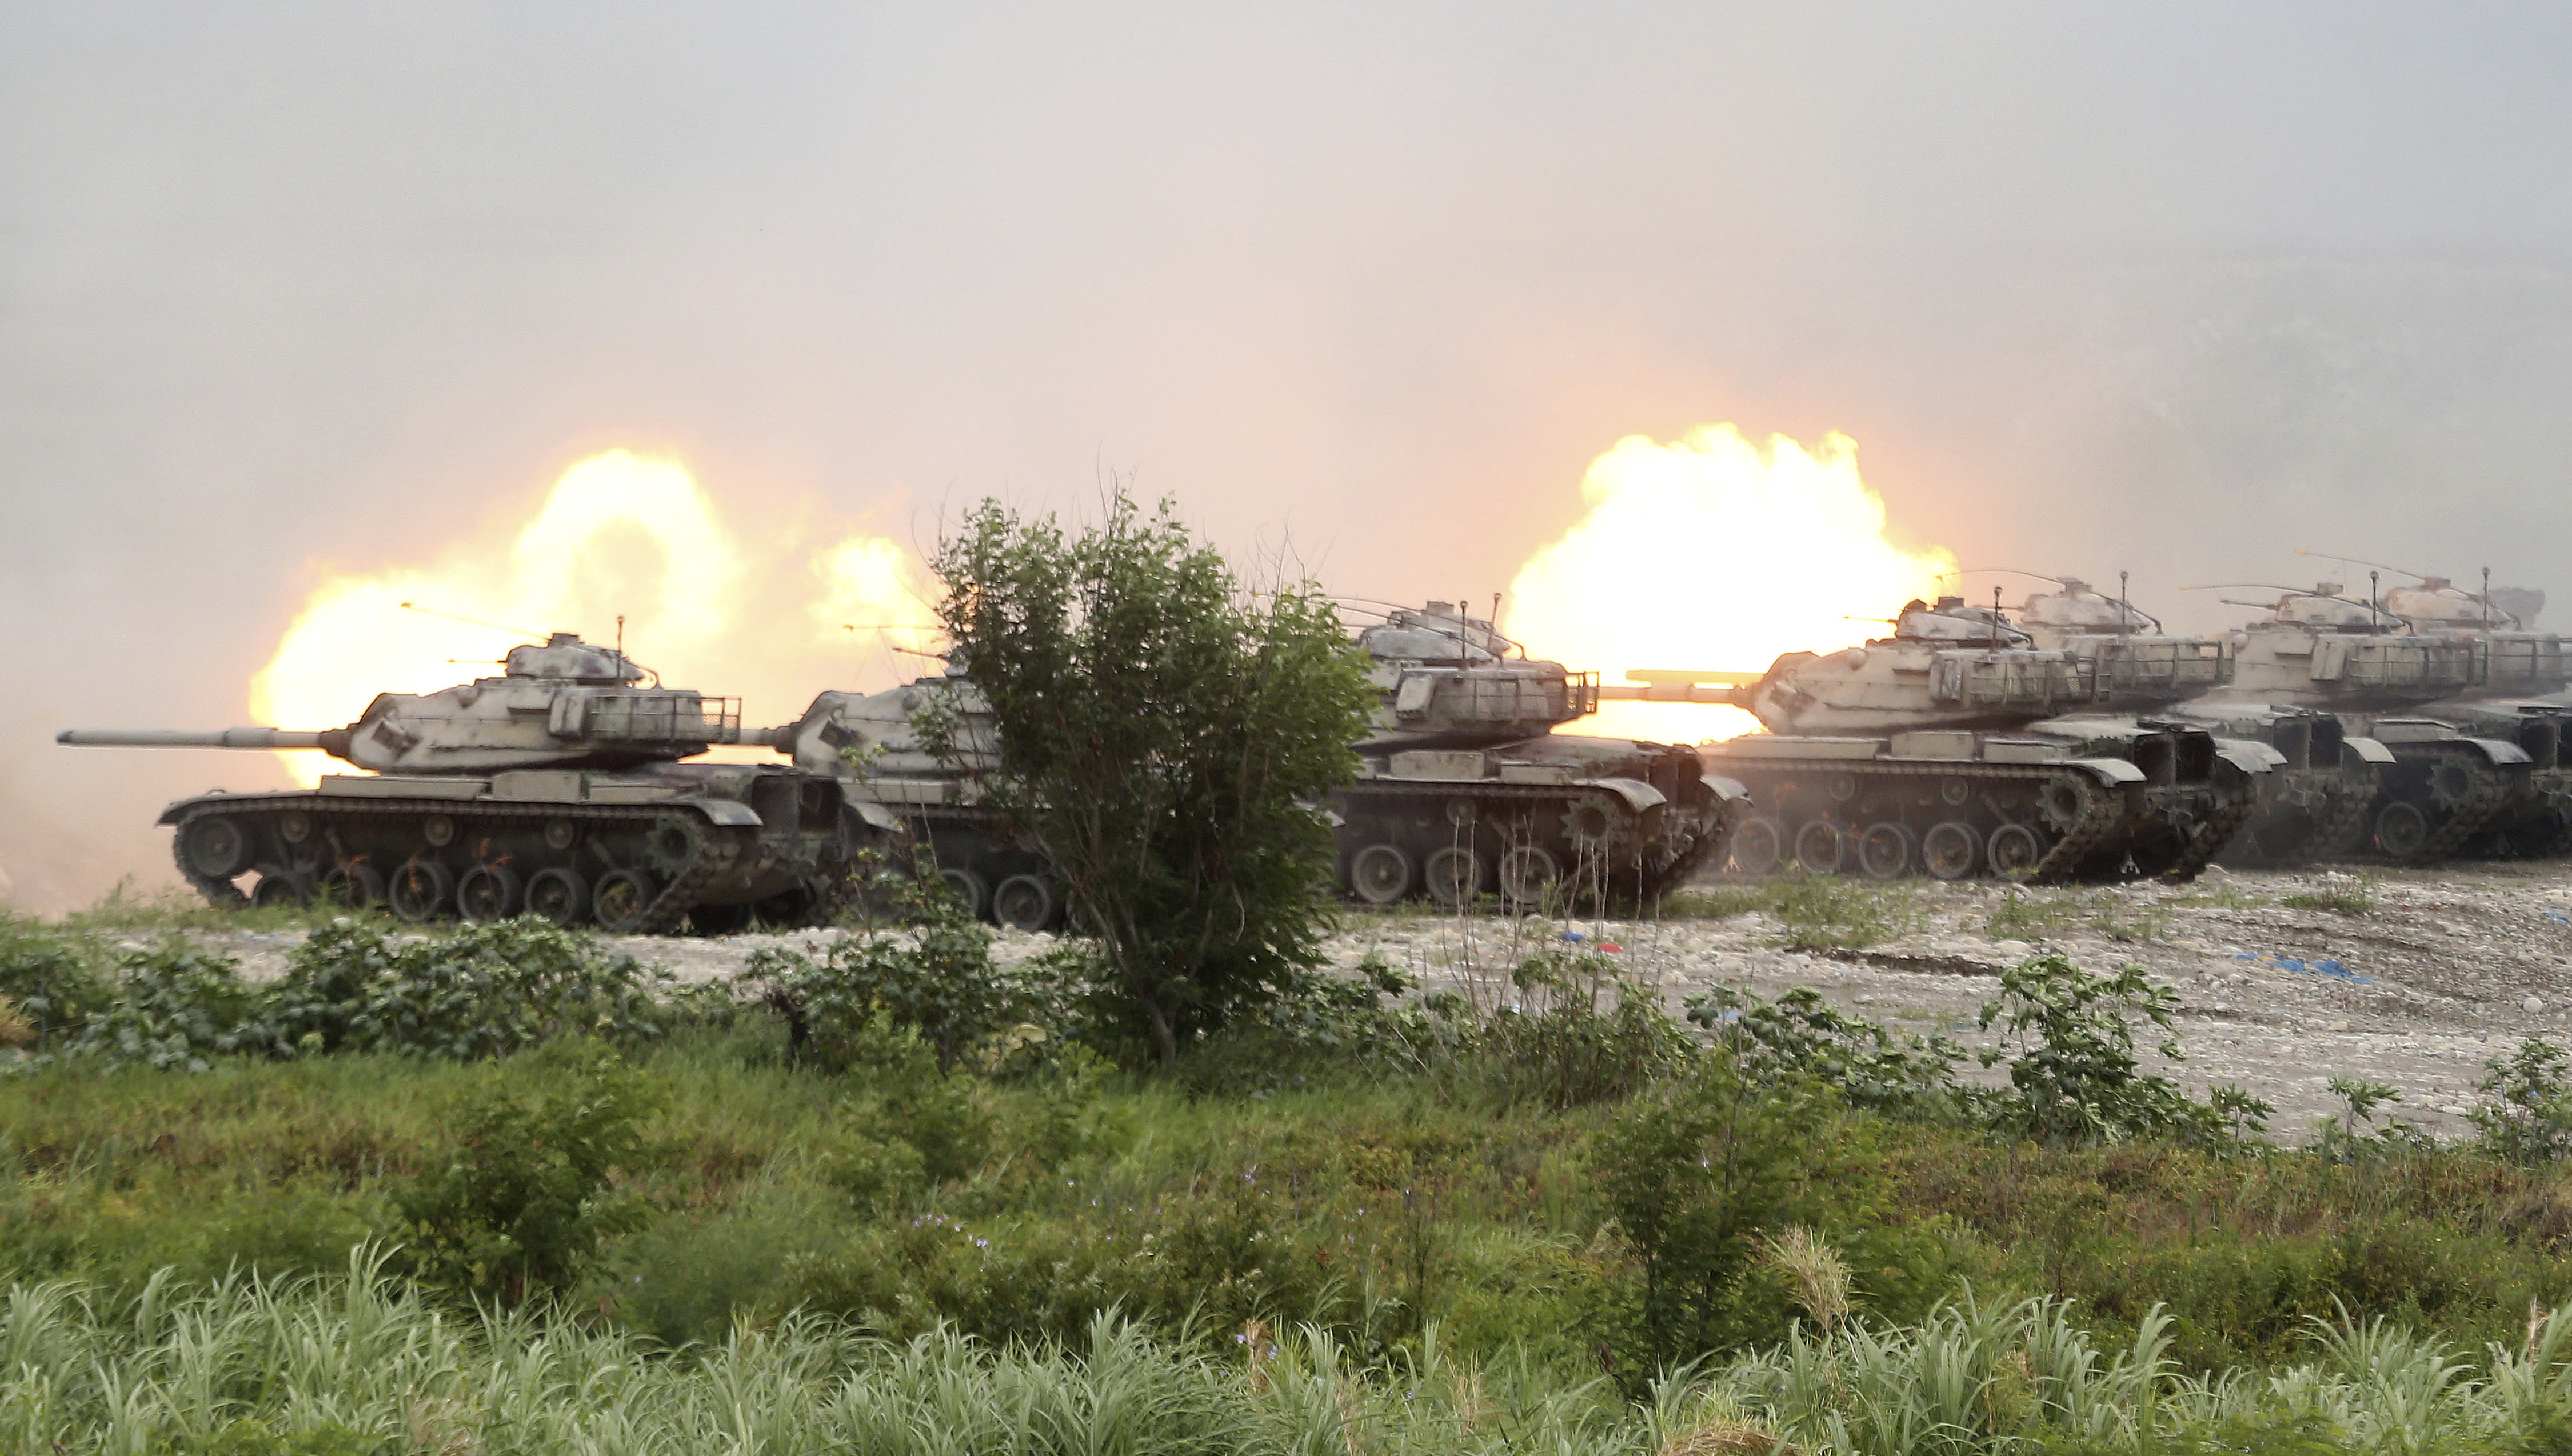 M60A3 Patton main battle tanks in a line fire during the 36th Han Kung military exercises in Taichung City, central Taiwan, Thursday, July 16, 2020. (AP Photo/Chiang Ying-ying)